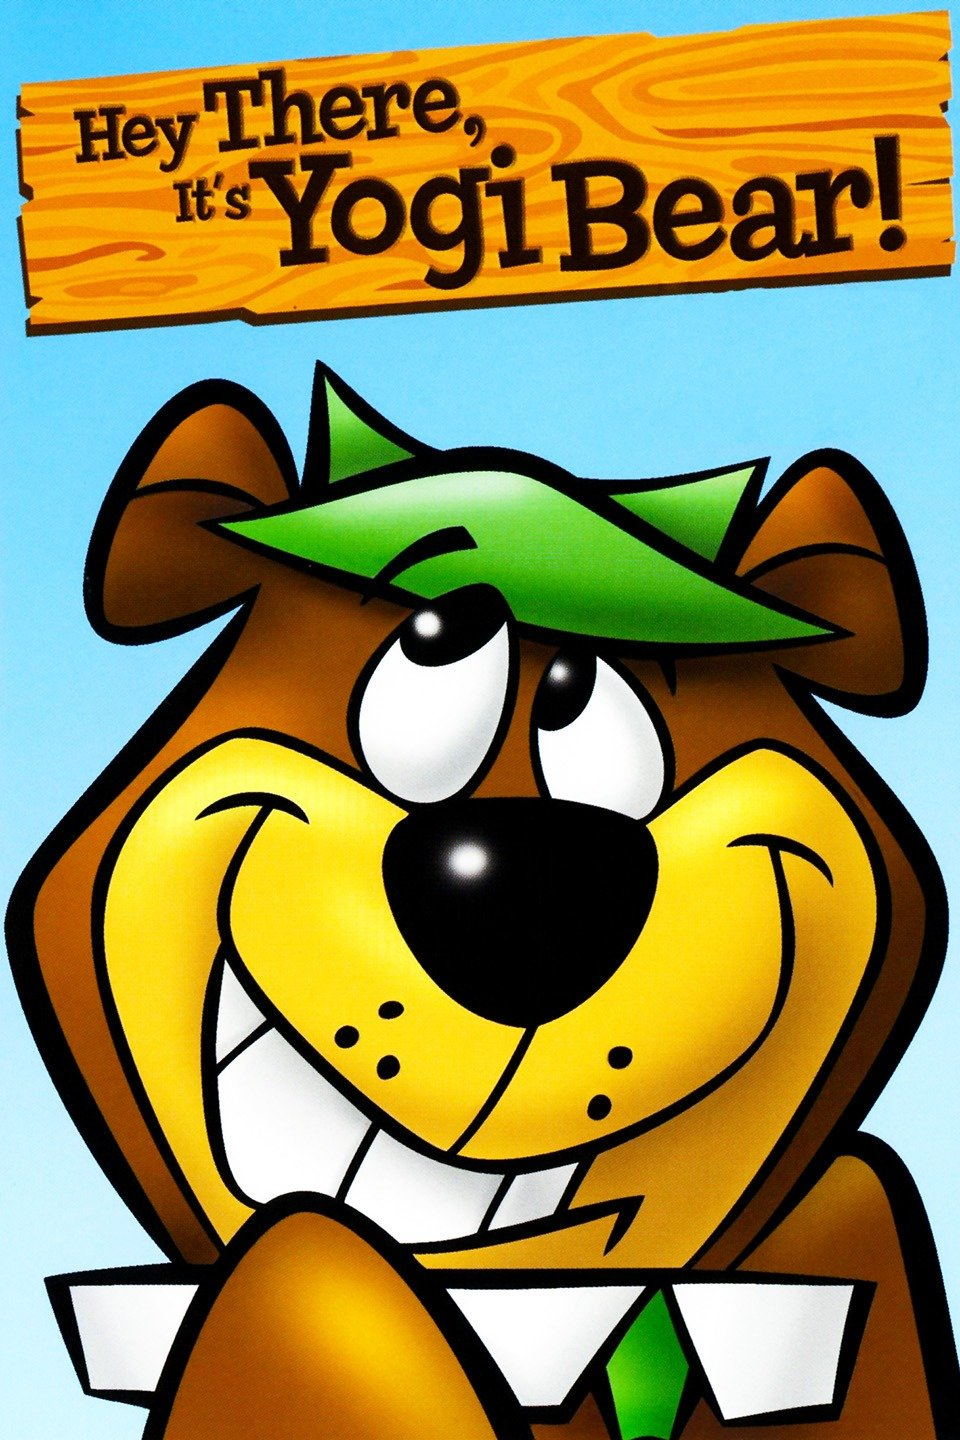 Hey There, It's Yogi Bear 1964